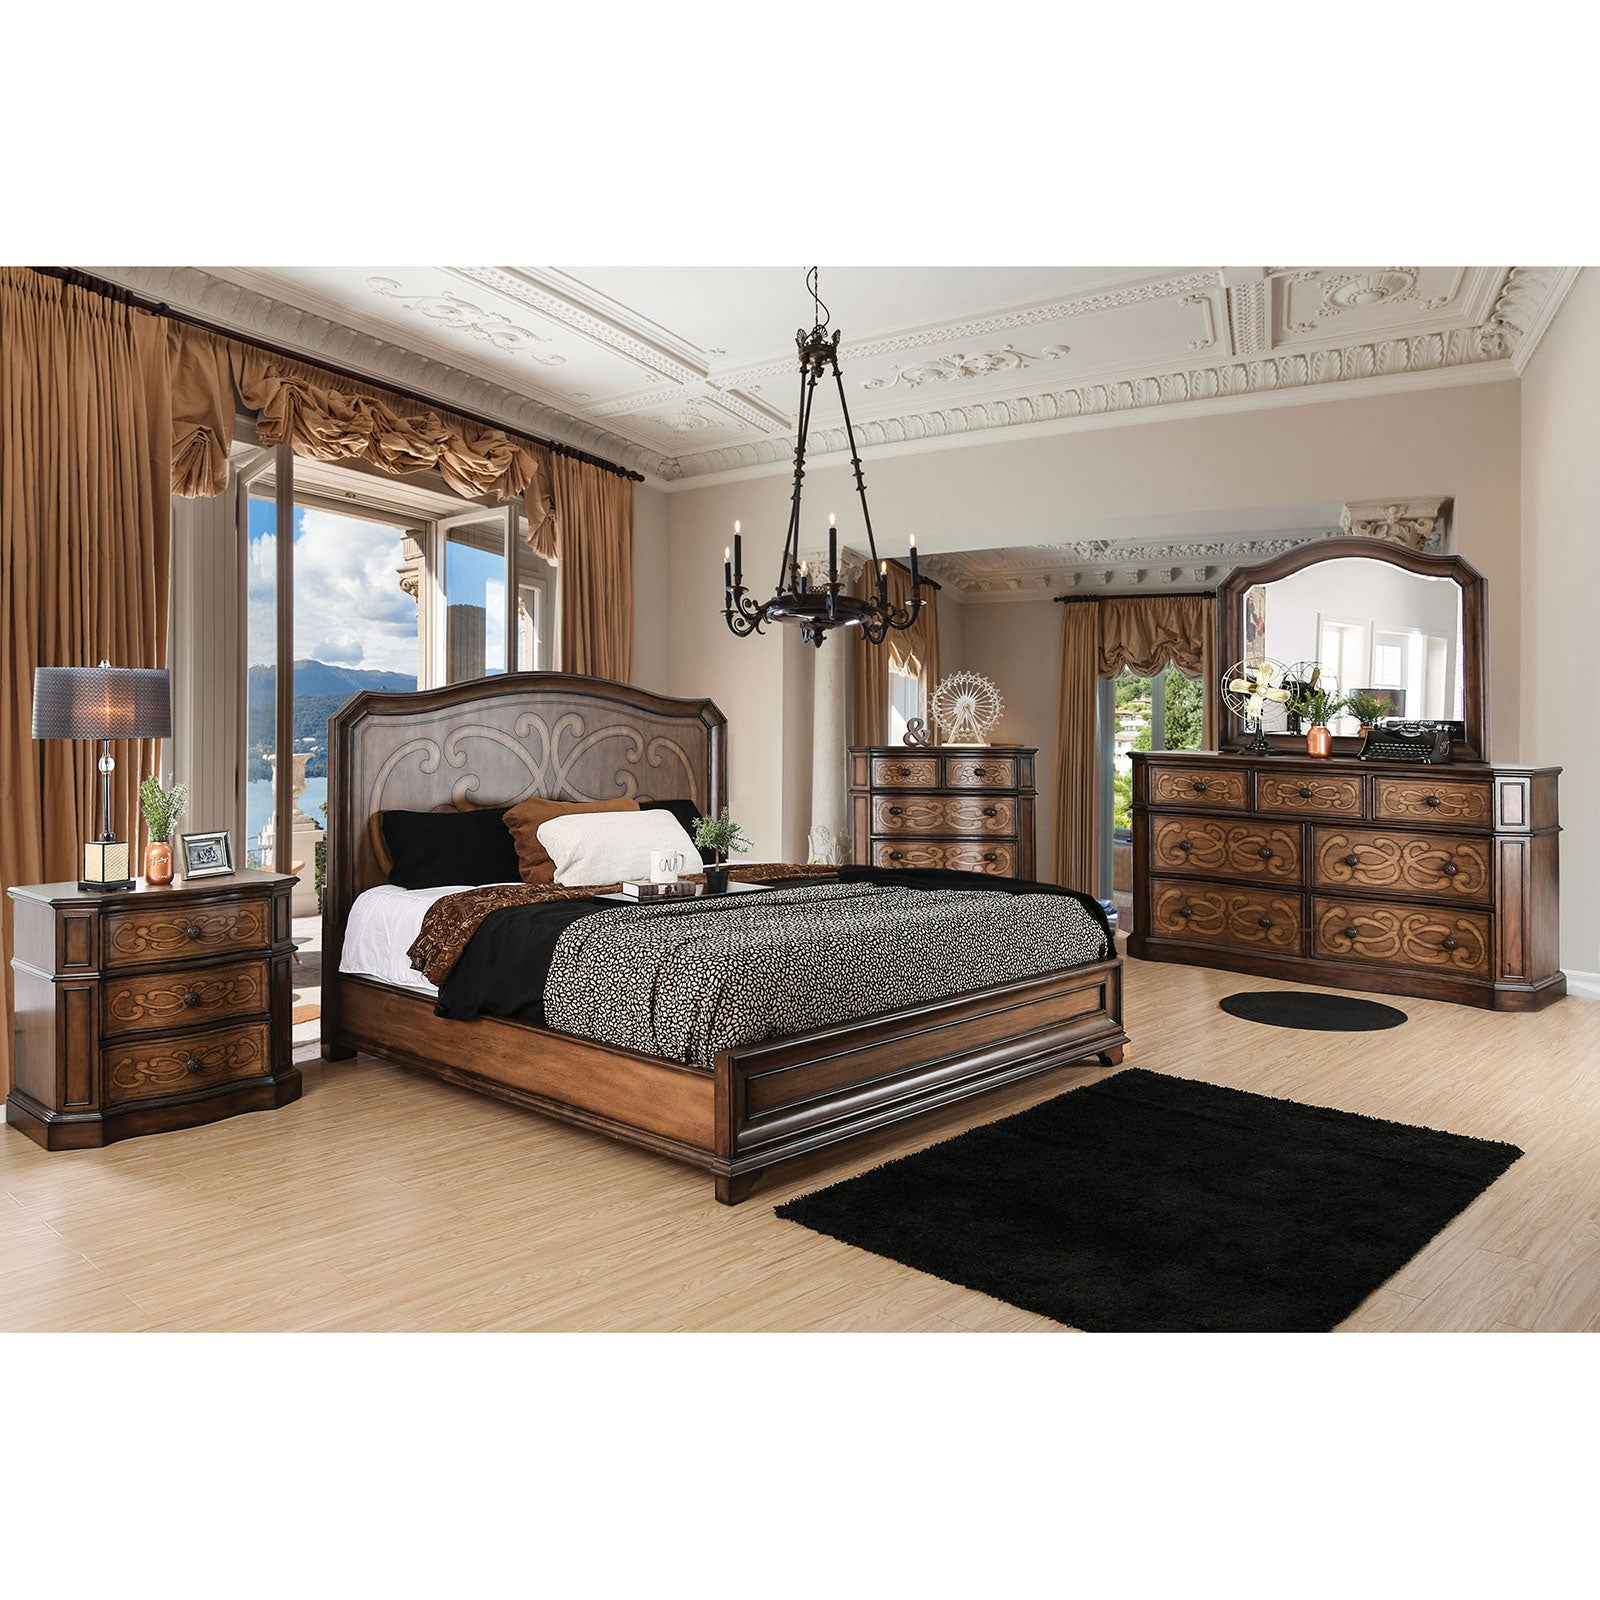 EMMALINE 5 Pc. Queen Bedroom Set w- Chest - InteriorDesignsToGo.com